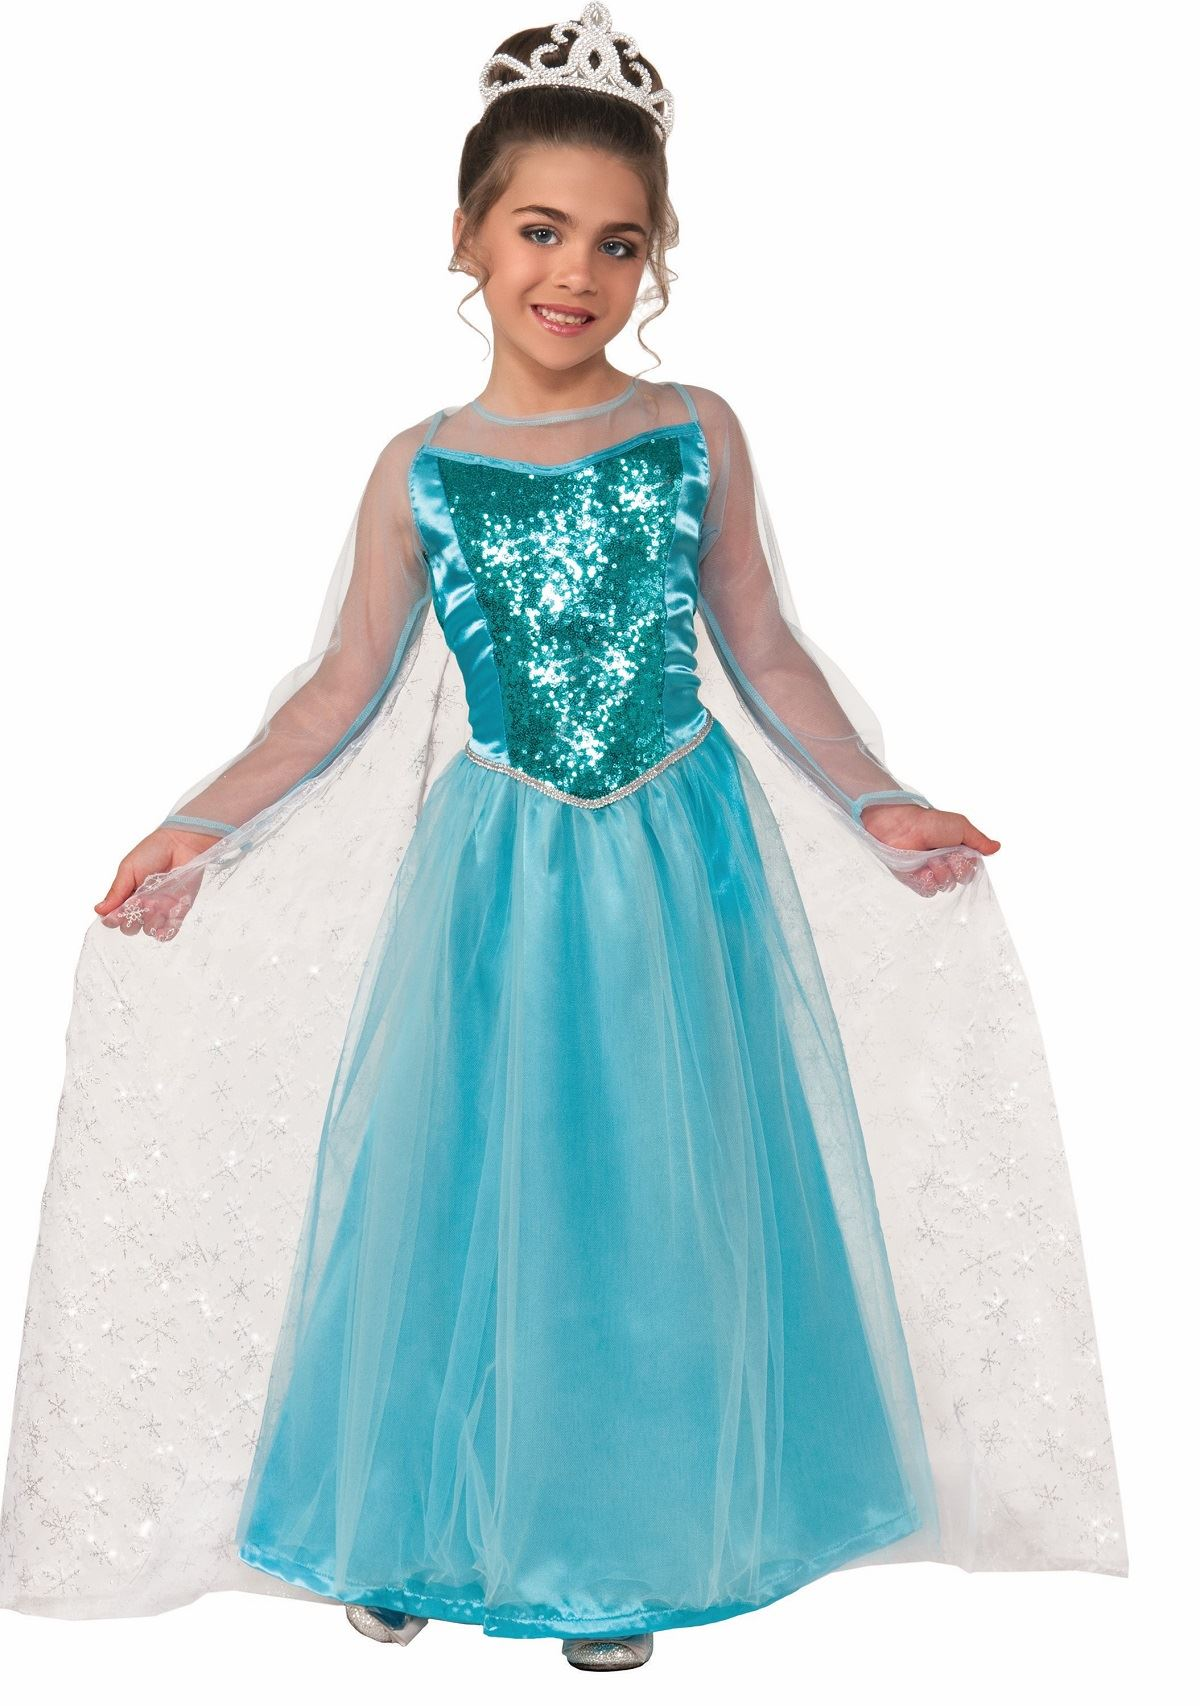 Kids Snow Queen Princes Girls Costume | $35.99 | The Costume Land